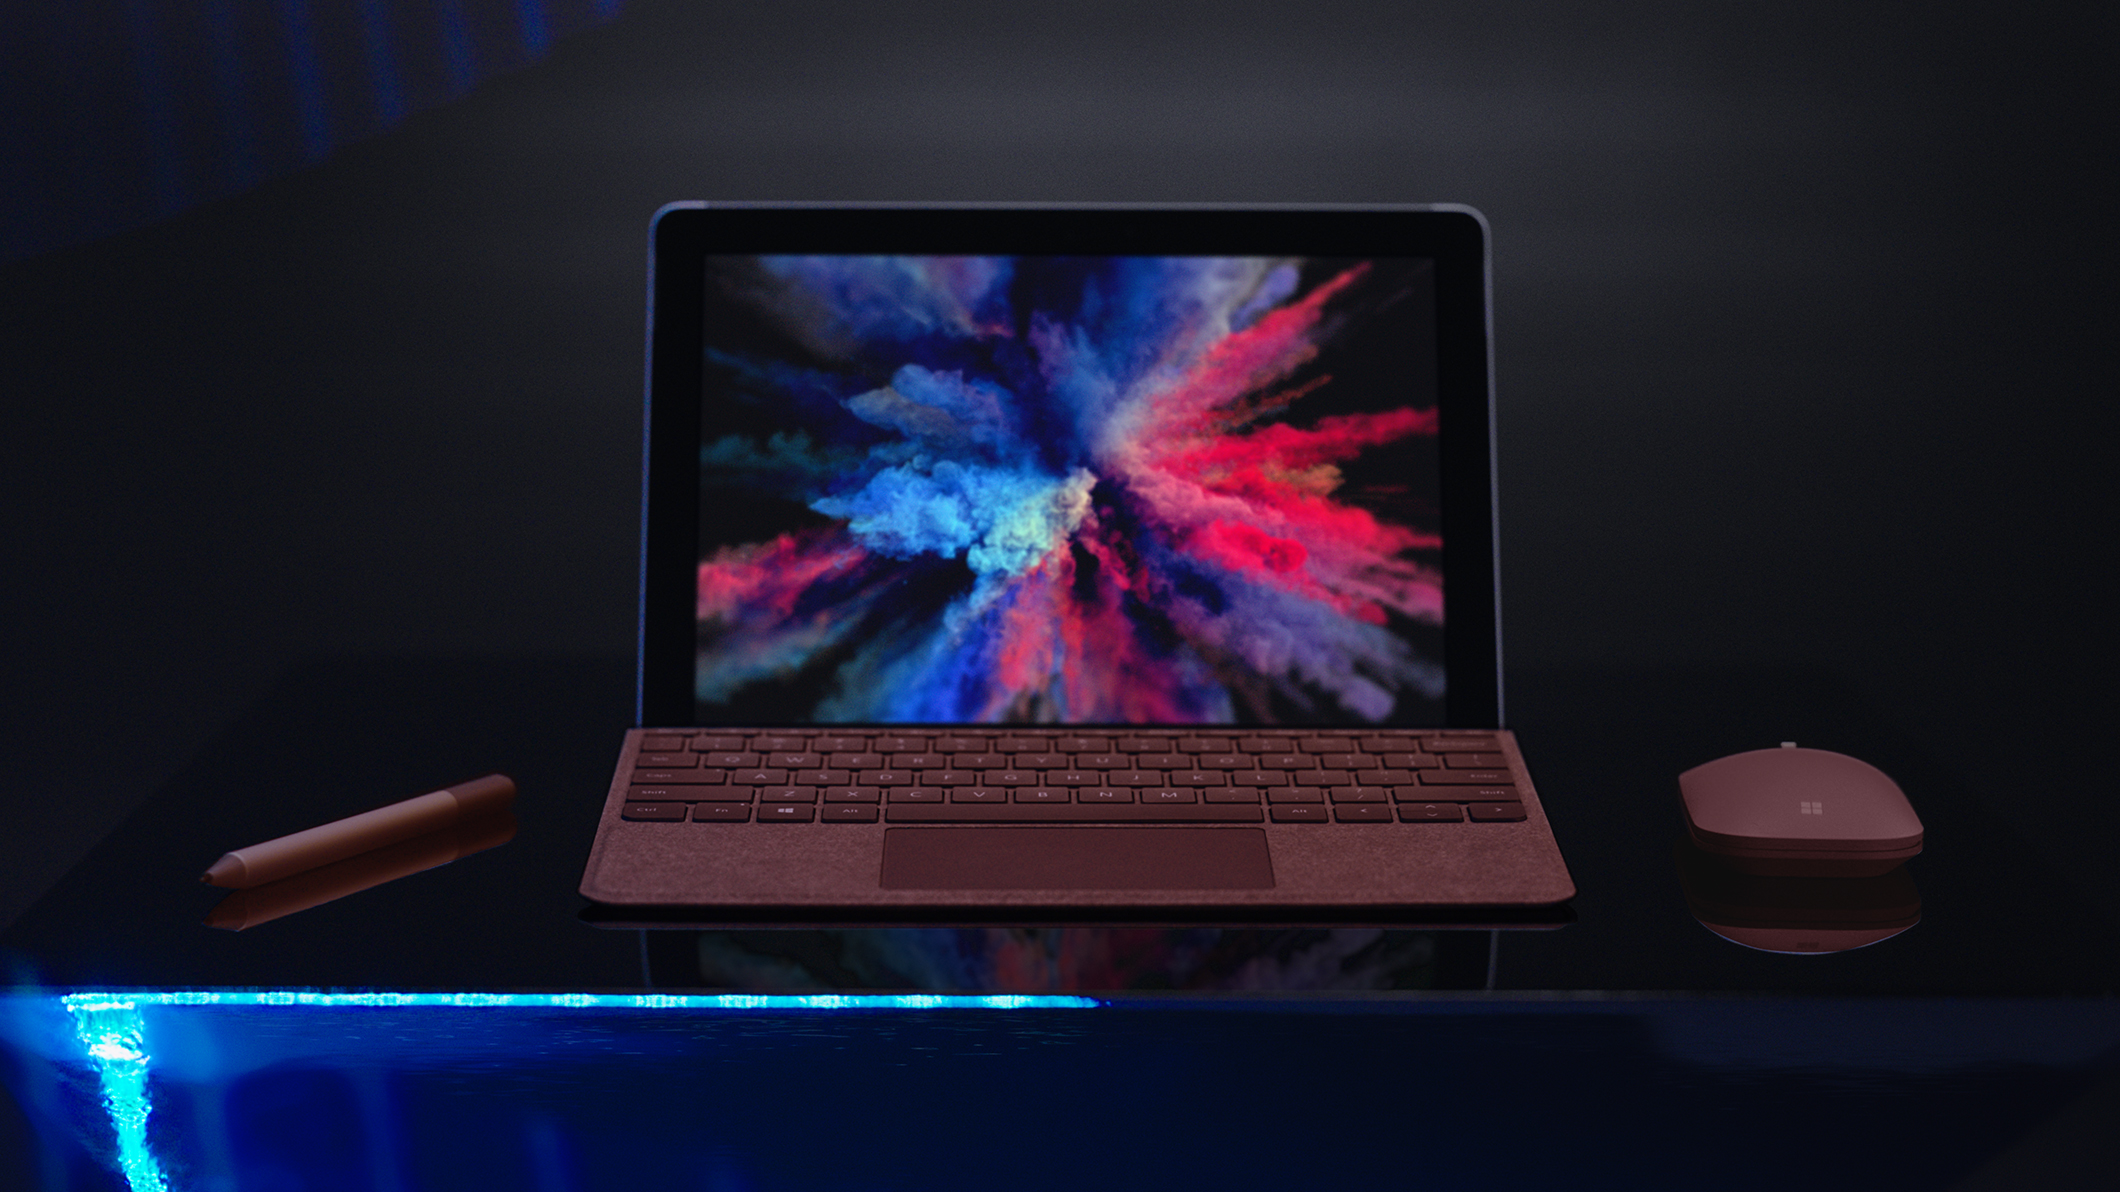 Introducing The New Surface Go Portable Power Microsoft Started By Replacing Cord On My Defender This Was A Scary